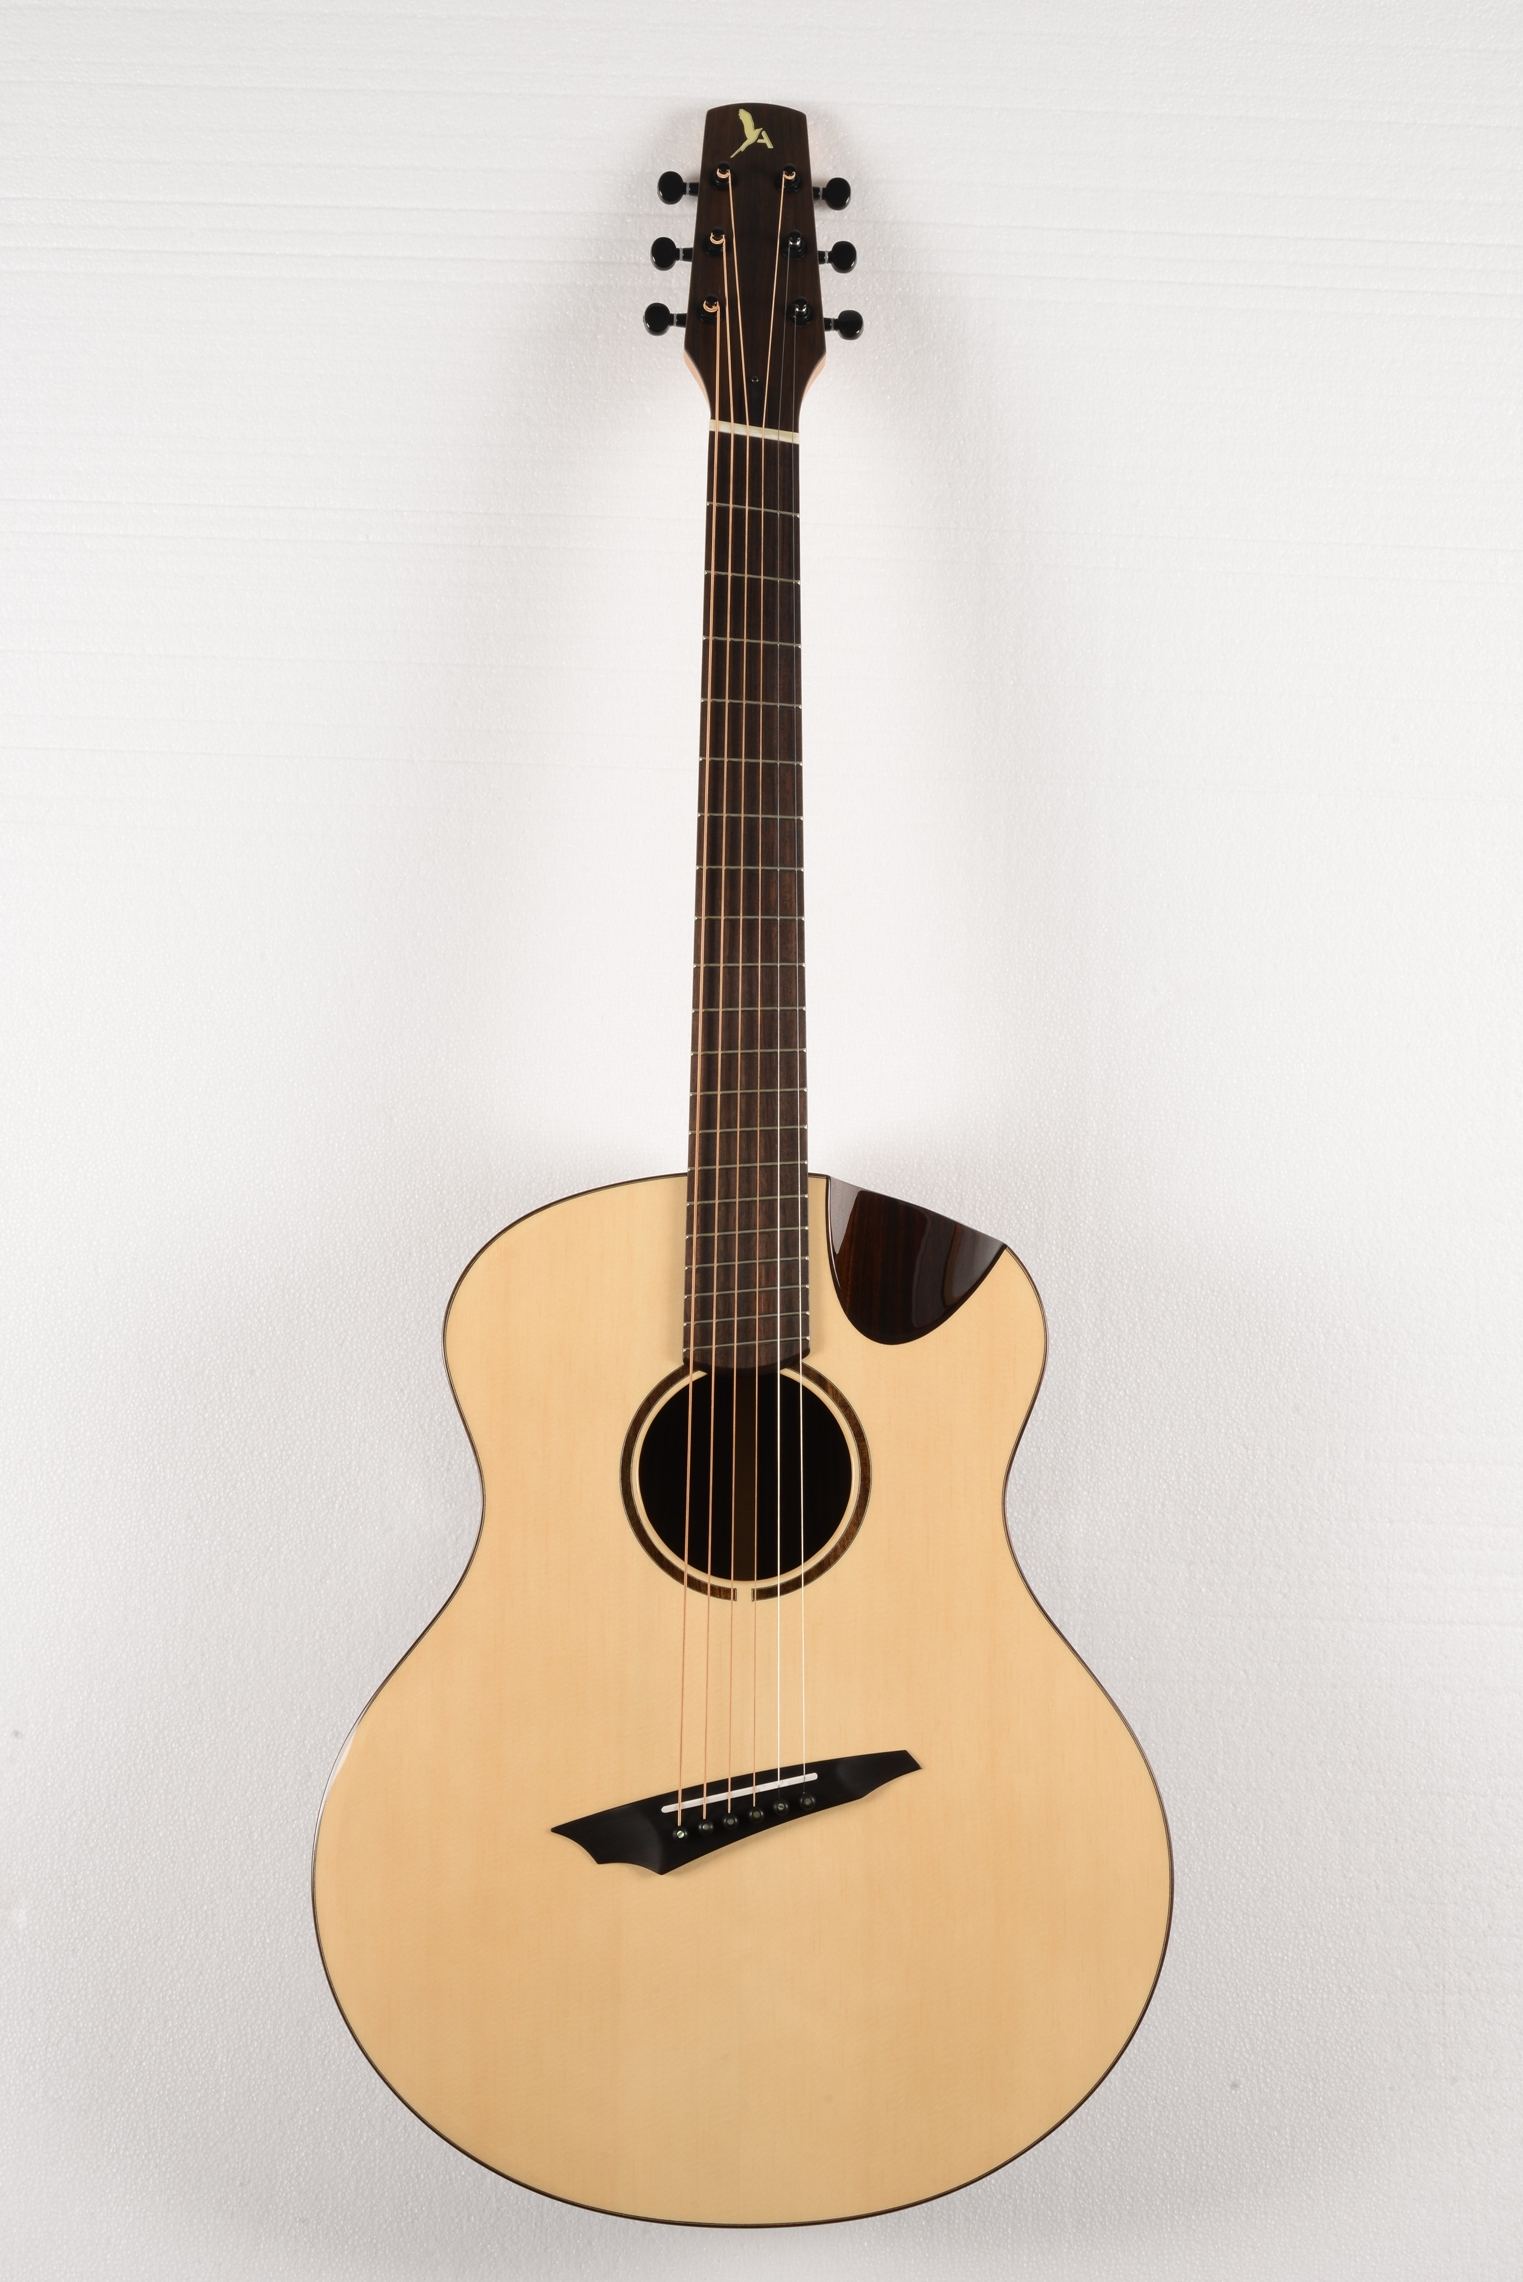 Songbird Multi-Scale